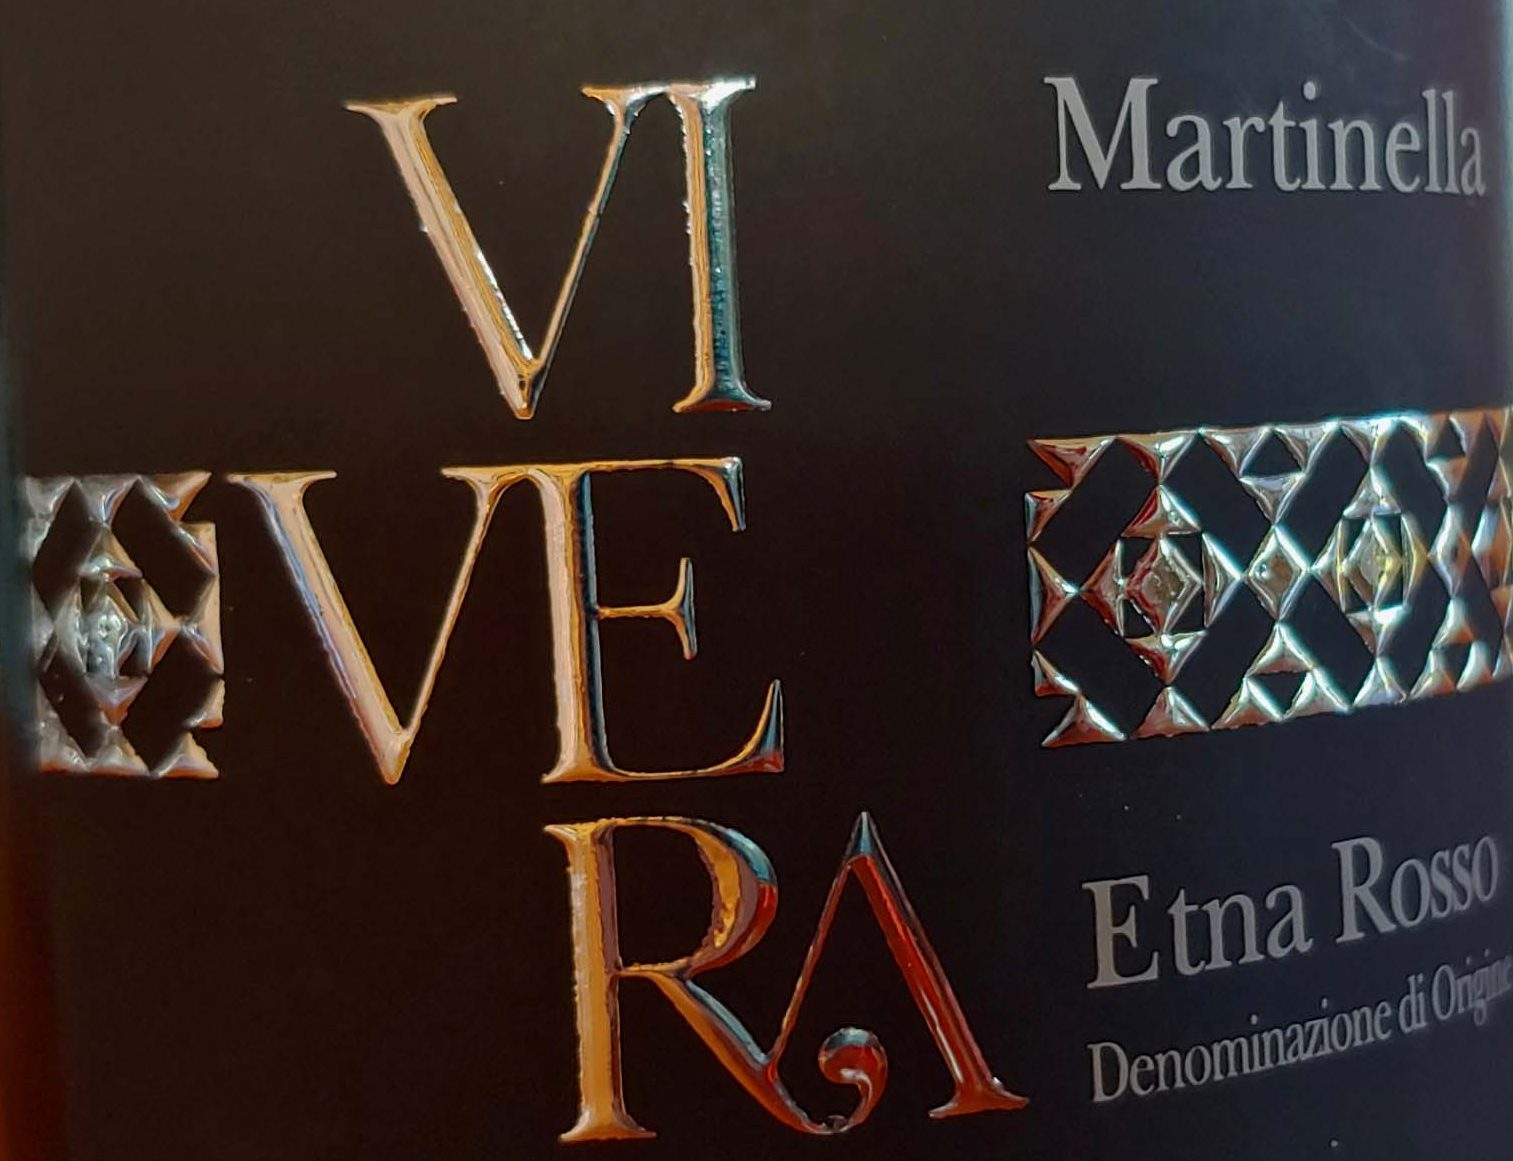 Martinella 2014 bio Etna wine red Vivera